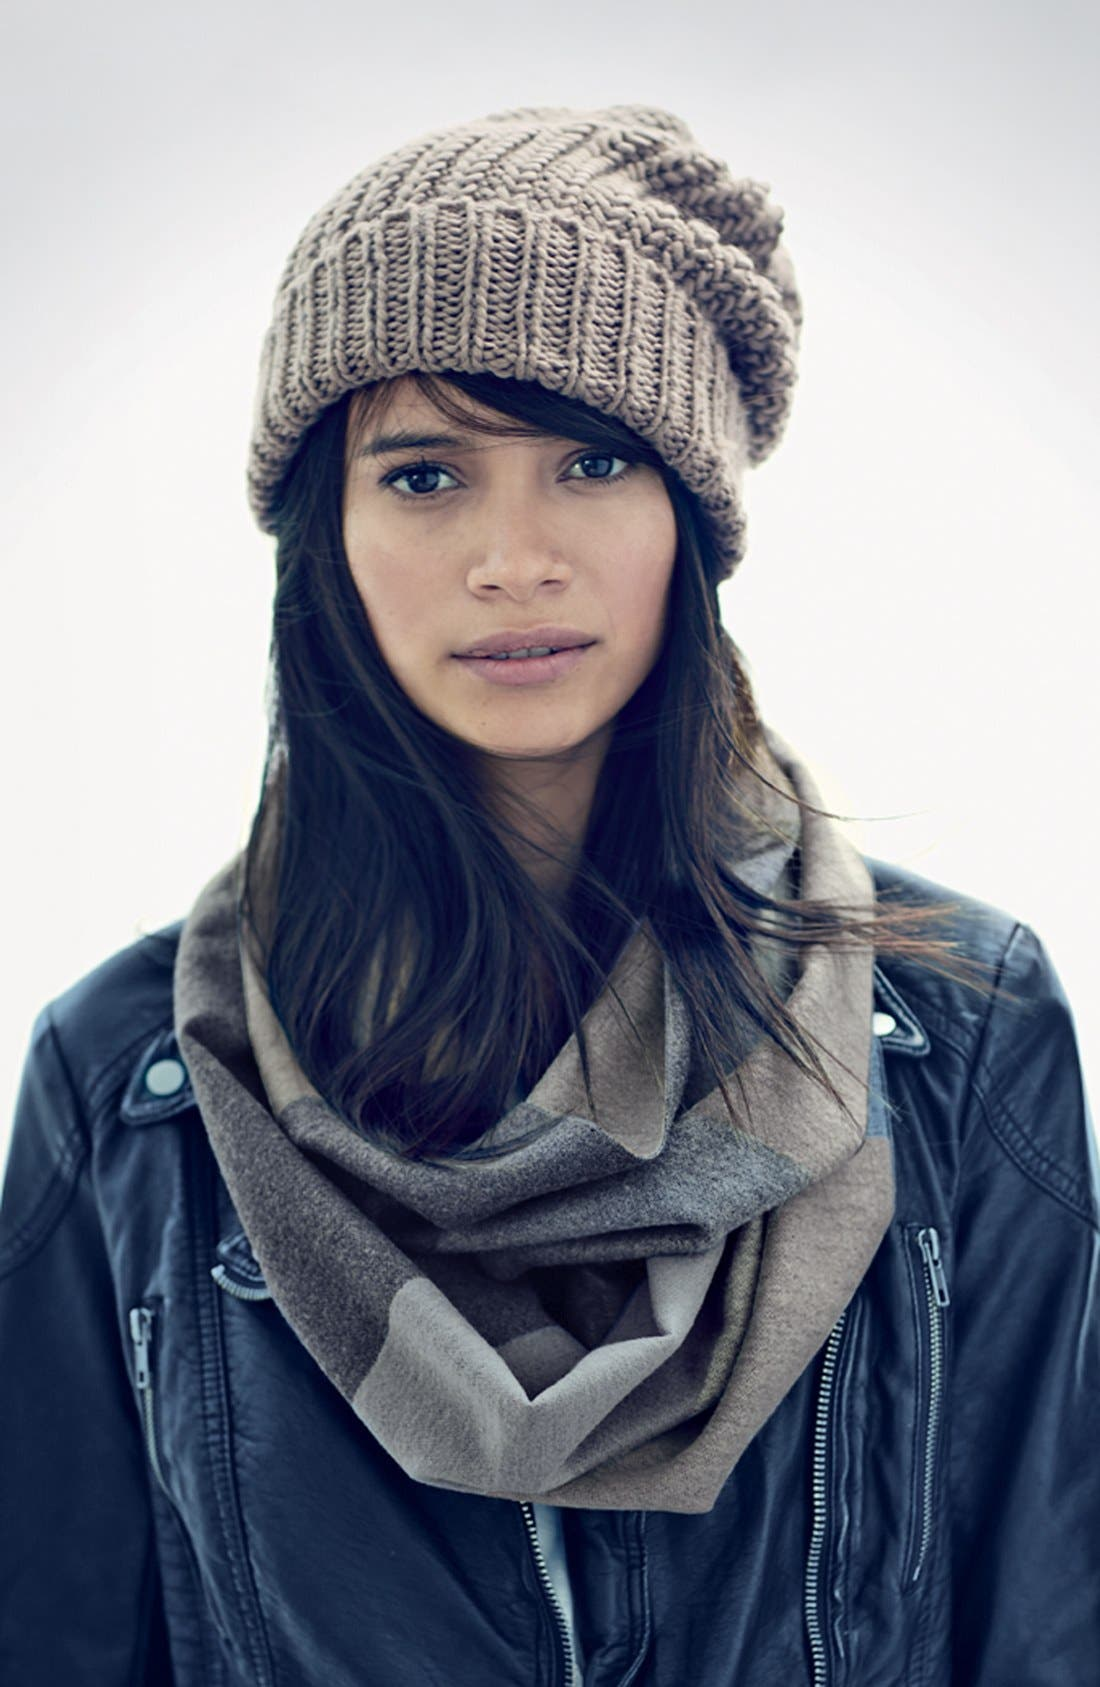 PHASE 3, CHUNKY KNIT BEANIE, Alternate thumbnail 2, color, 301